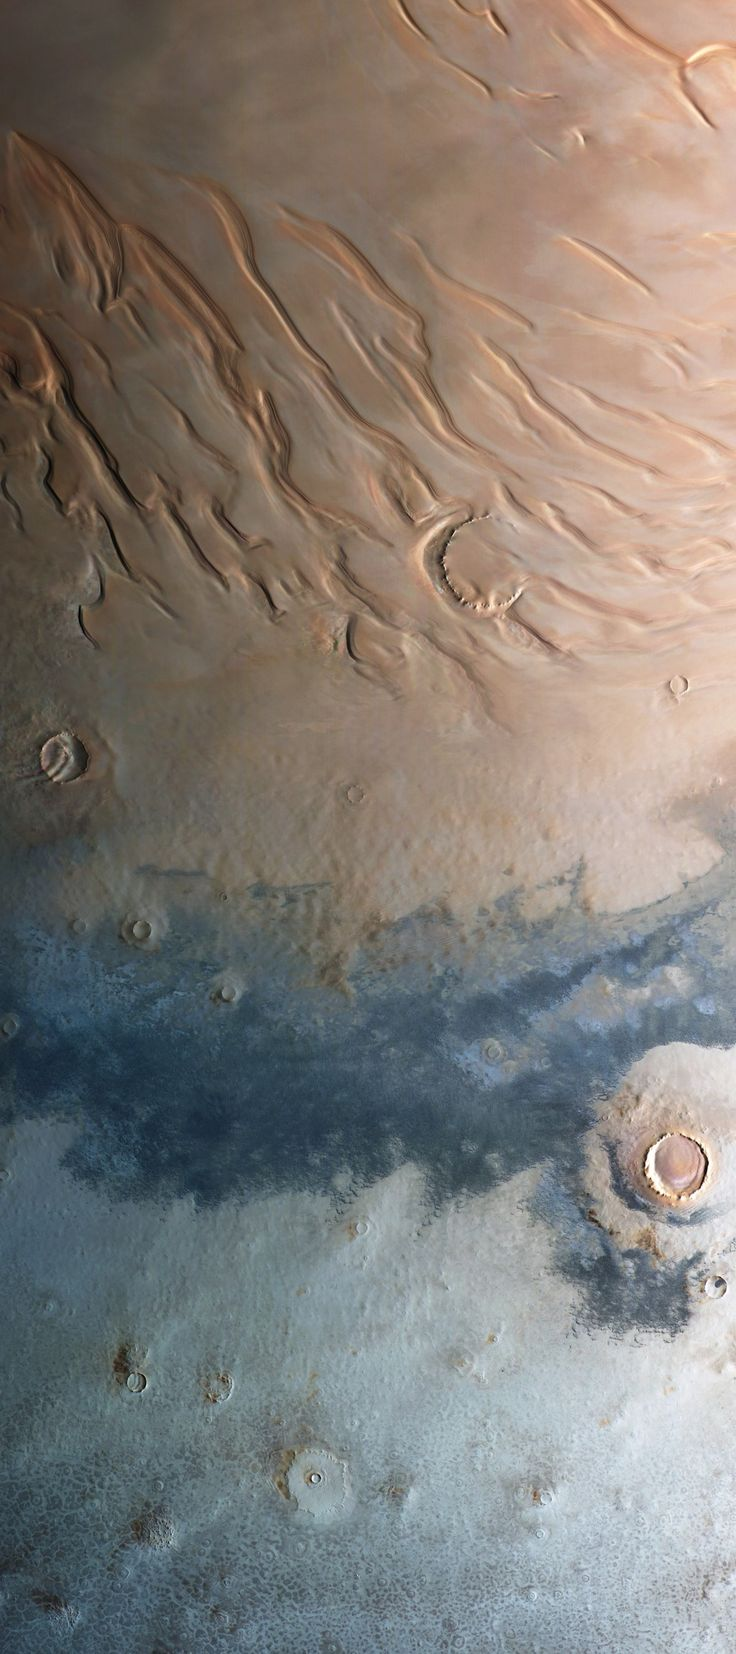 The Mars Express orbiter captured this stunning view of the north polar region of Mars /by ESA/DLR/FU Berlin (G. Neukum)